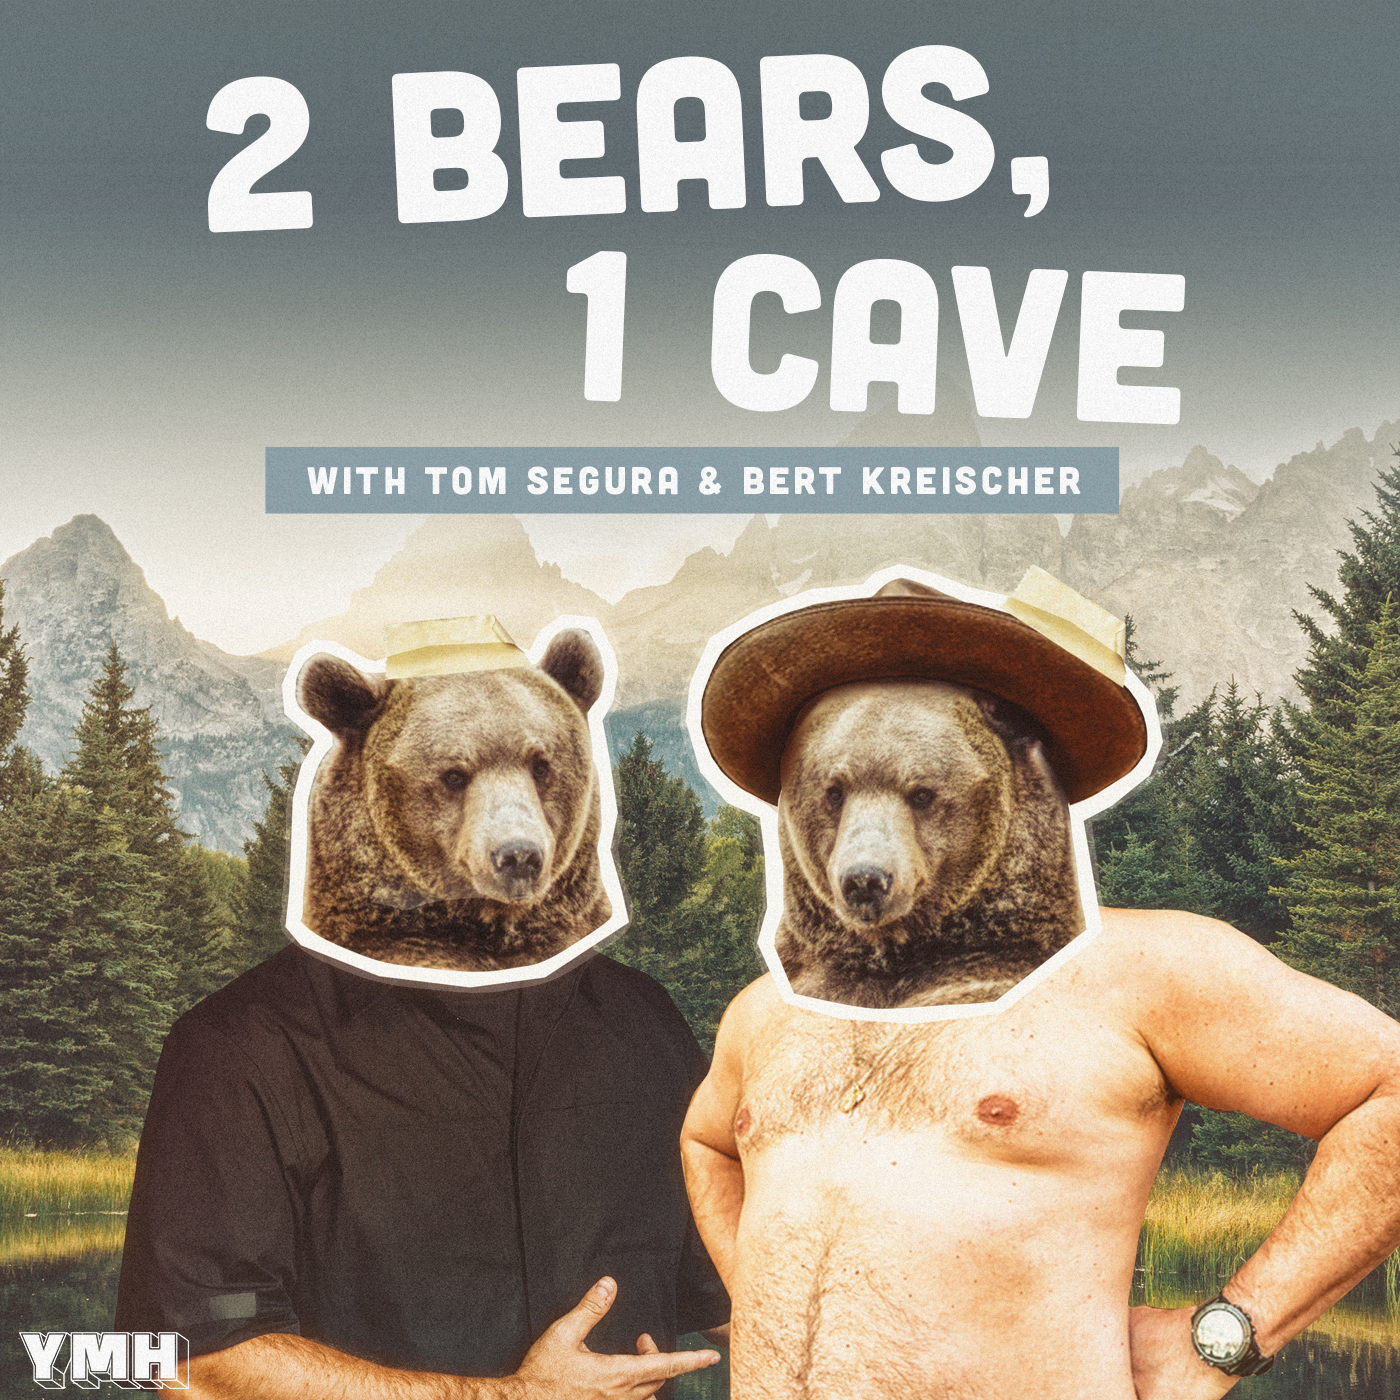 2 Bears 1 Cave with Tom Segura & Bert Kreischer channel image